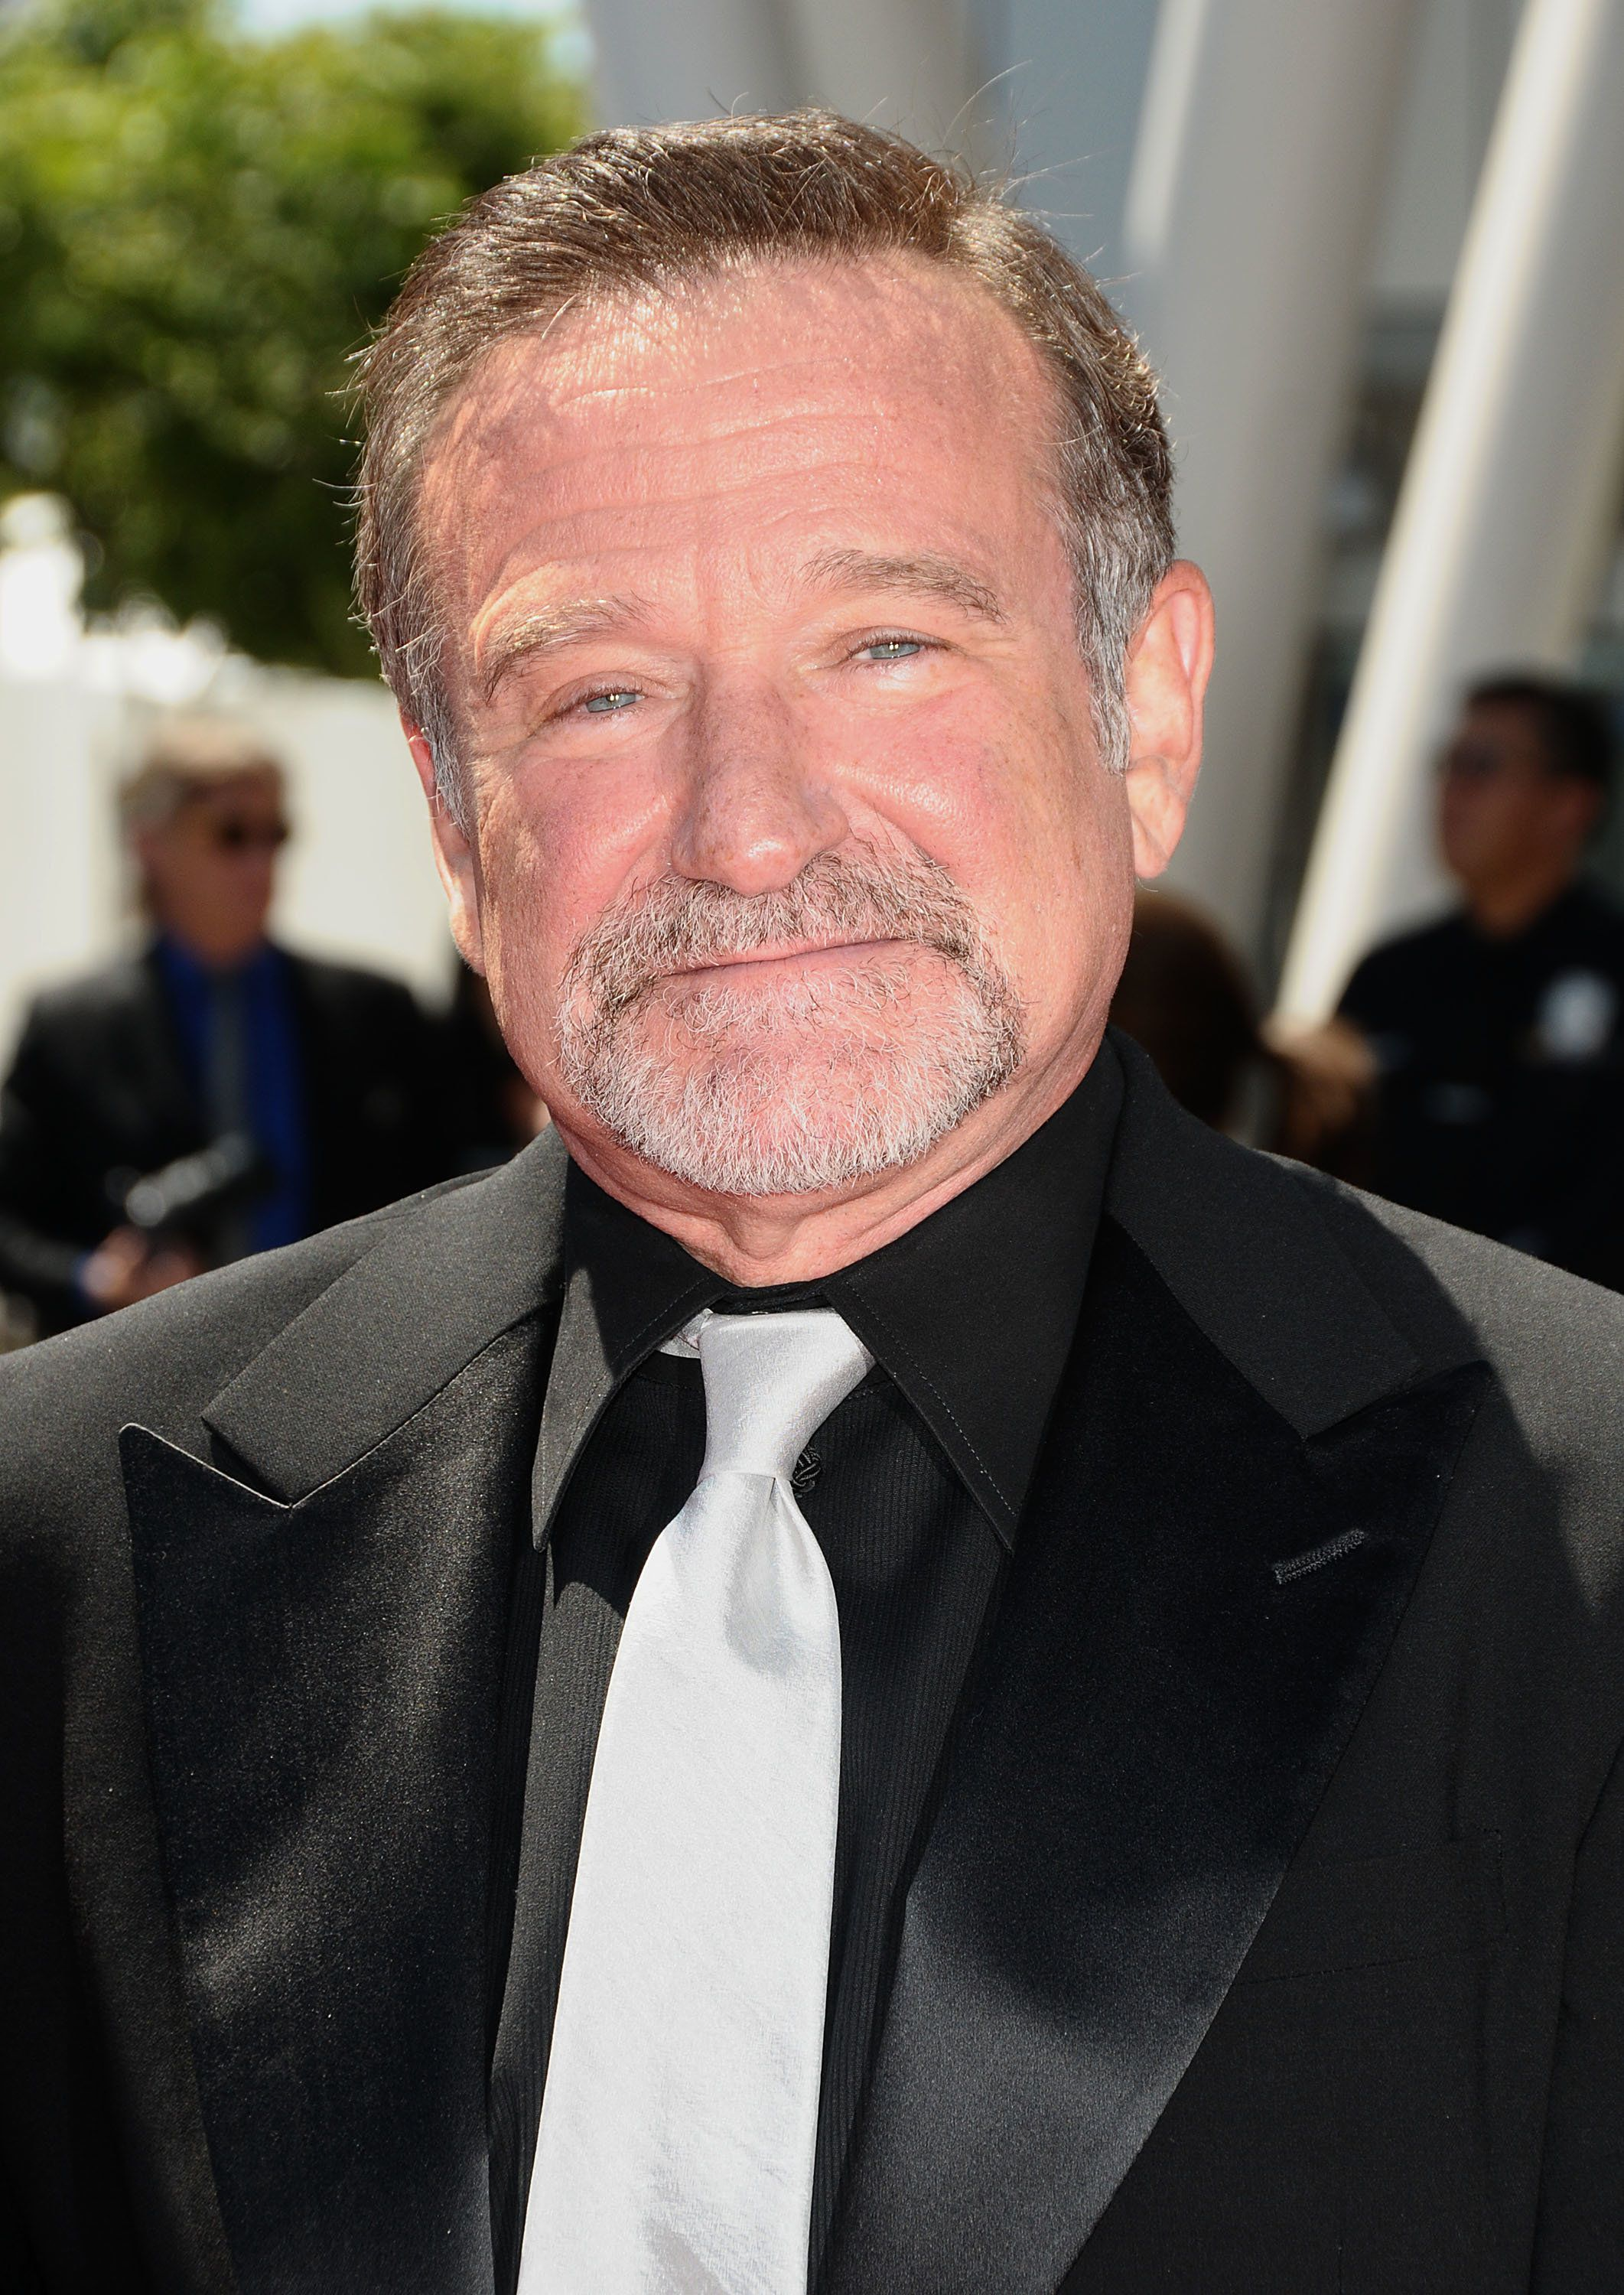 LOS ANGELES, CA - AUGUST 21:  Actor Robin Williams attends the 2010 Creative Arts Emmy Awards at Nokia Plaza L.A. LIVE on August 21, 2010 in Los Angeles, California.  (Photo by Jason LaVeris/FilmMagic)